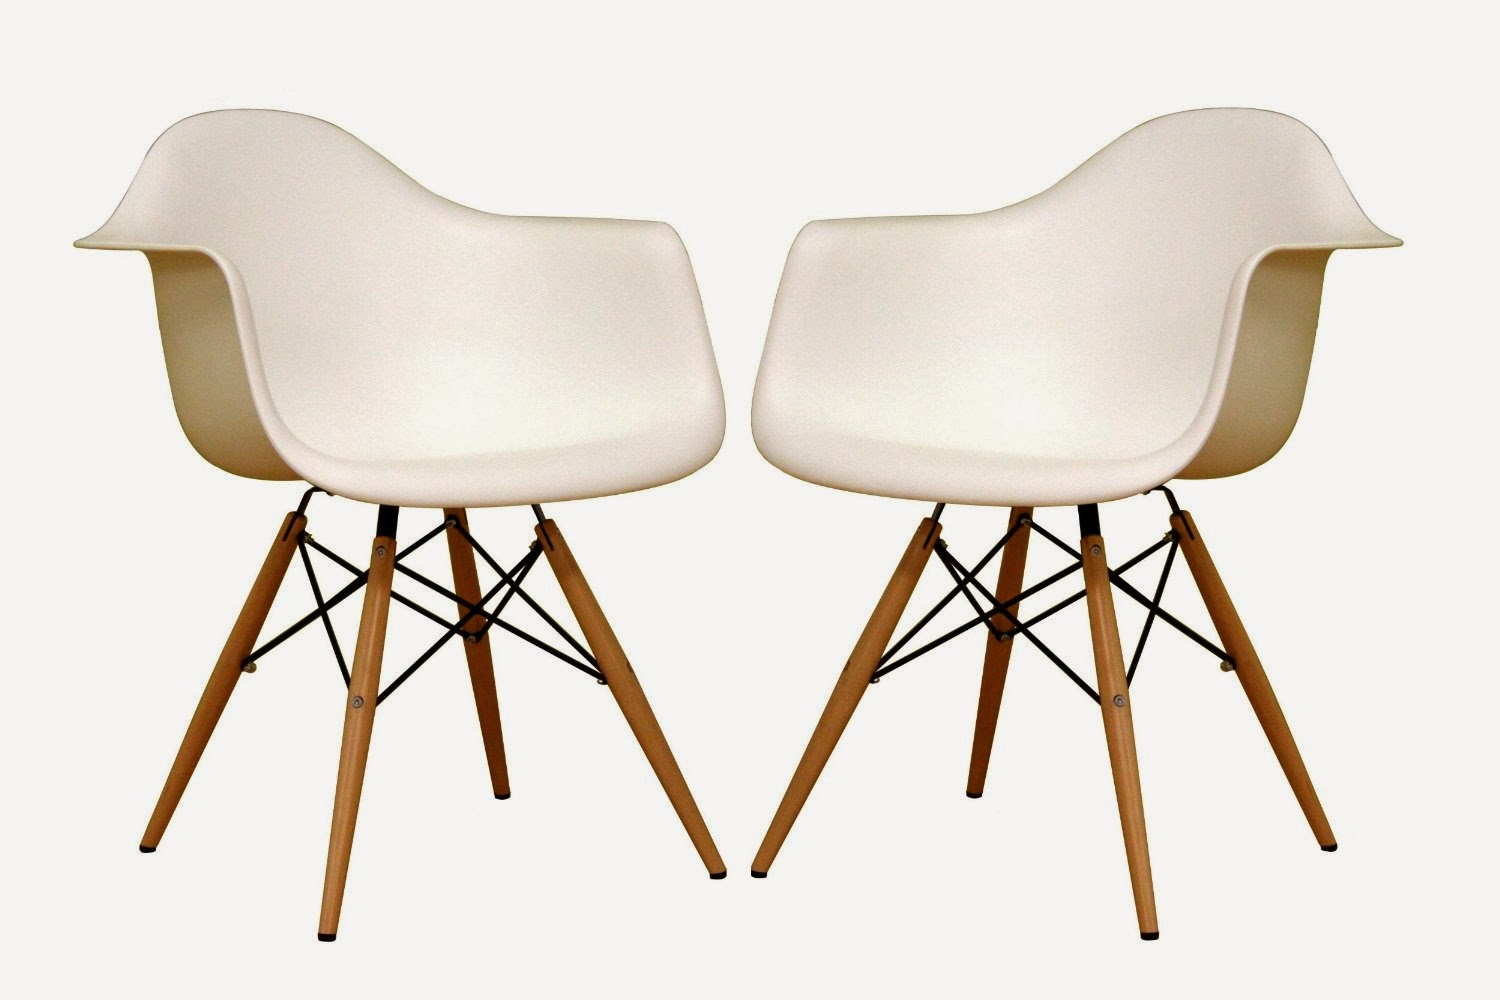 Hmh designs mcm eiffel chairs for Retro modern dining chairs